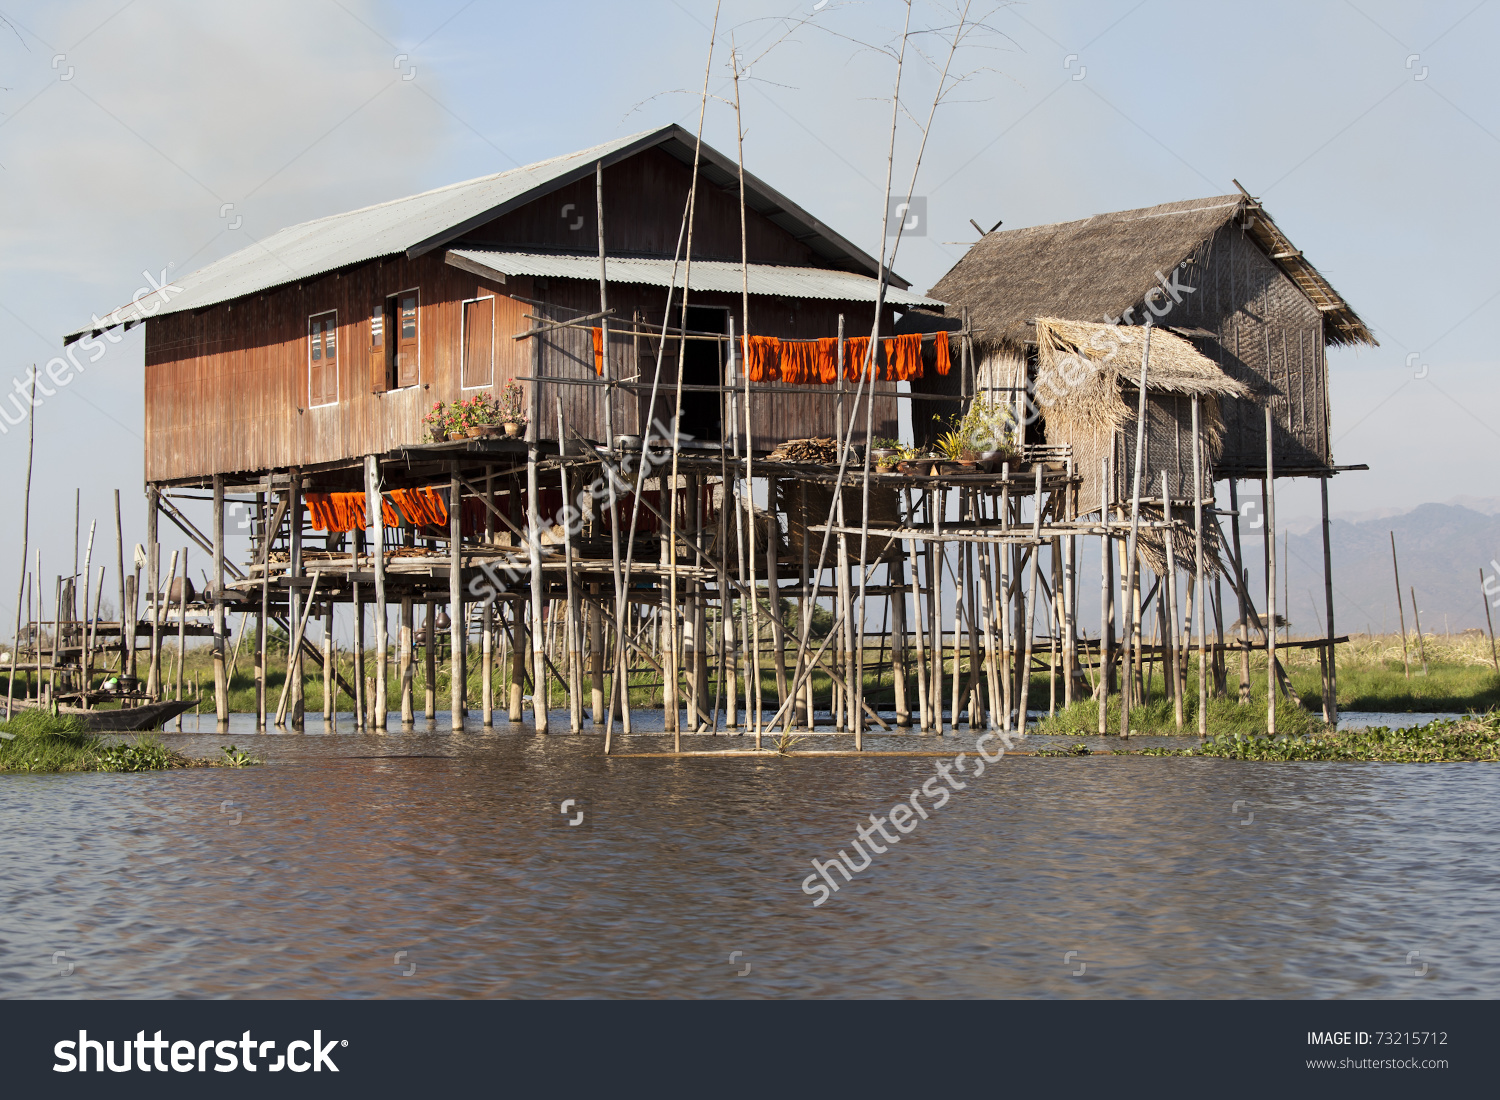 Village House On Inle Lake Standing On Stilt And Made From Bamboo.